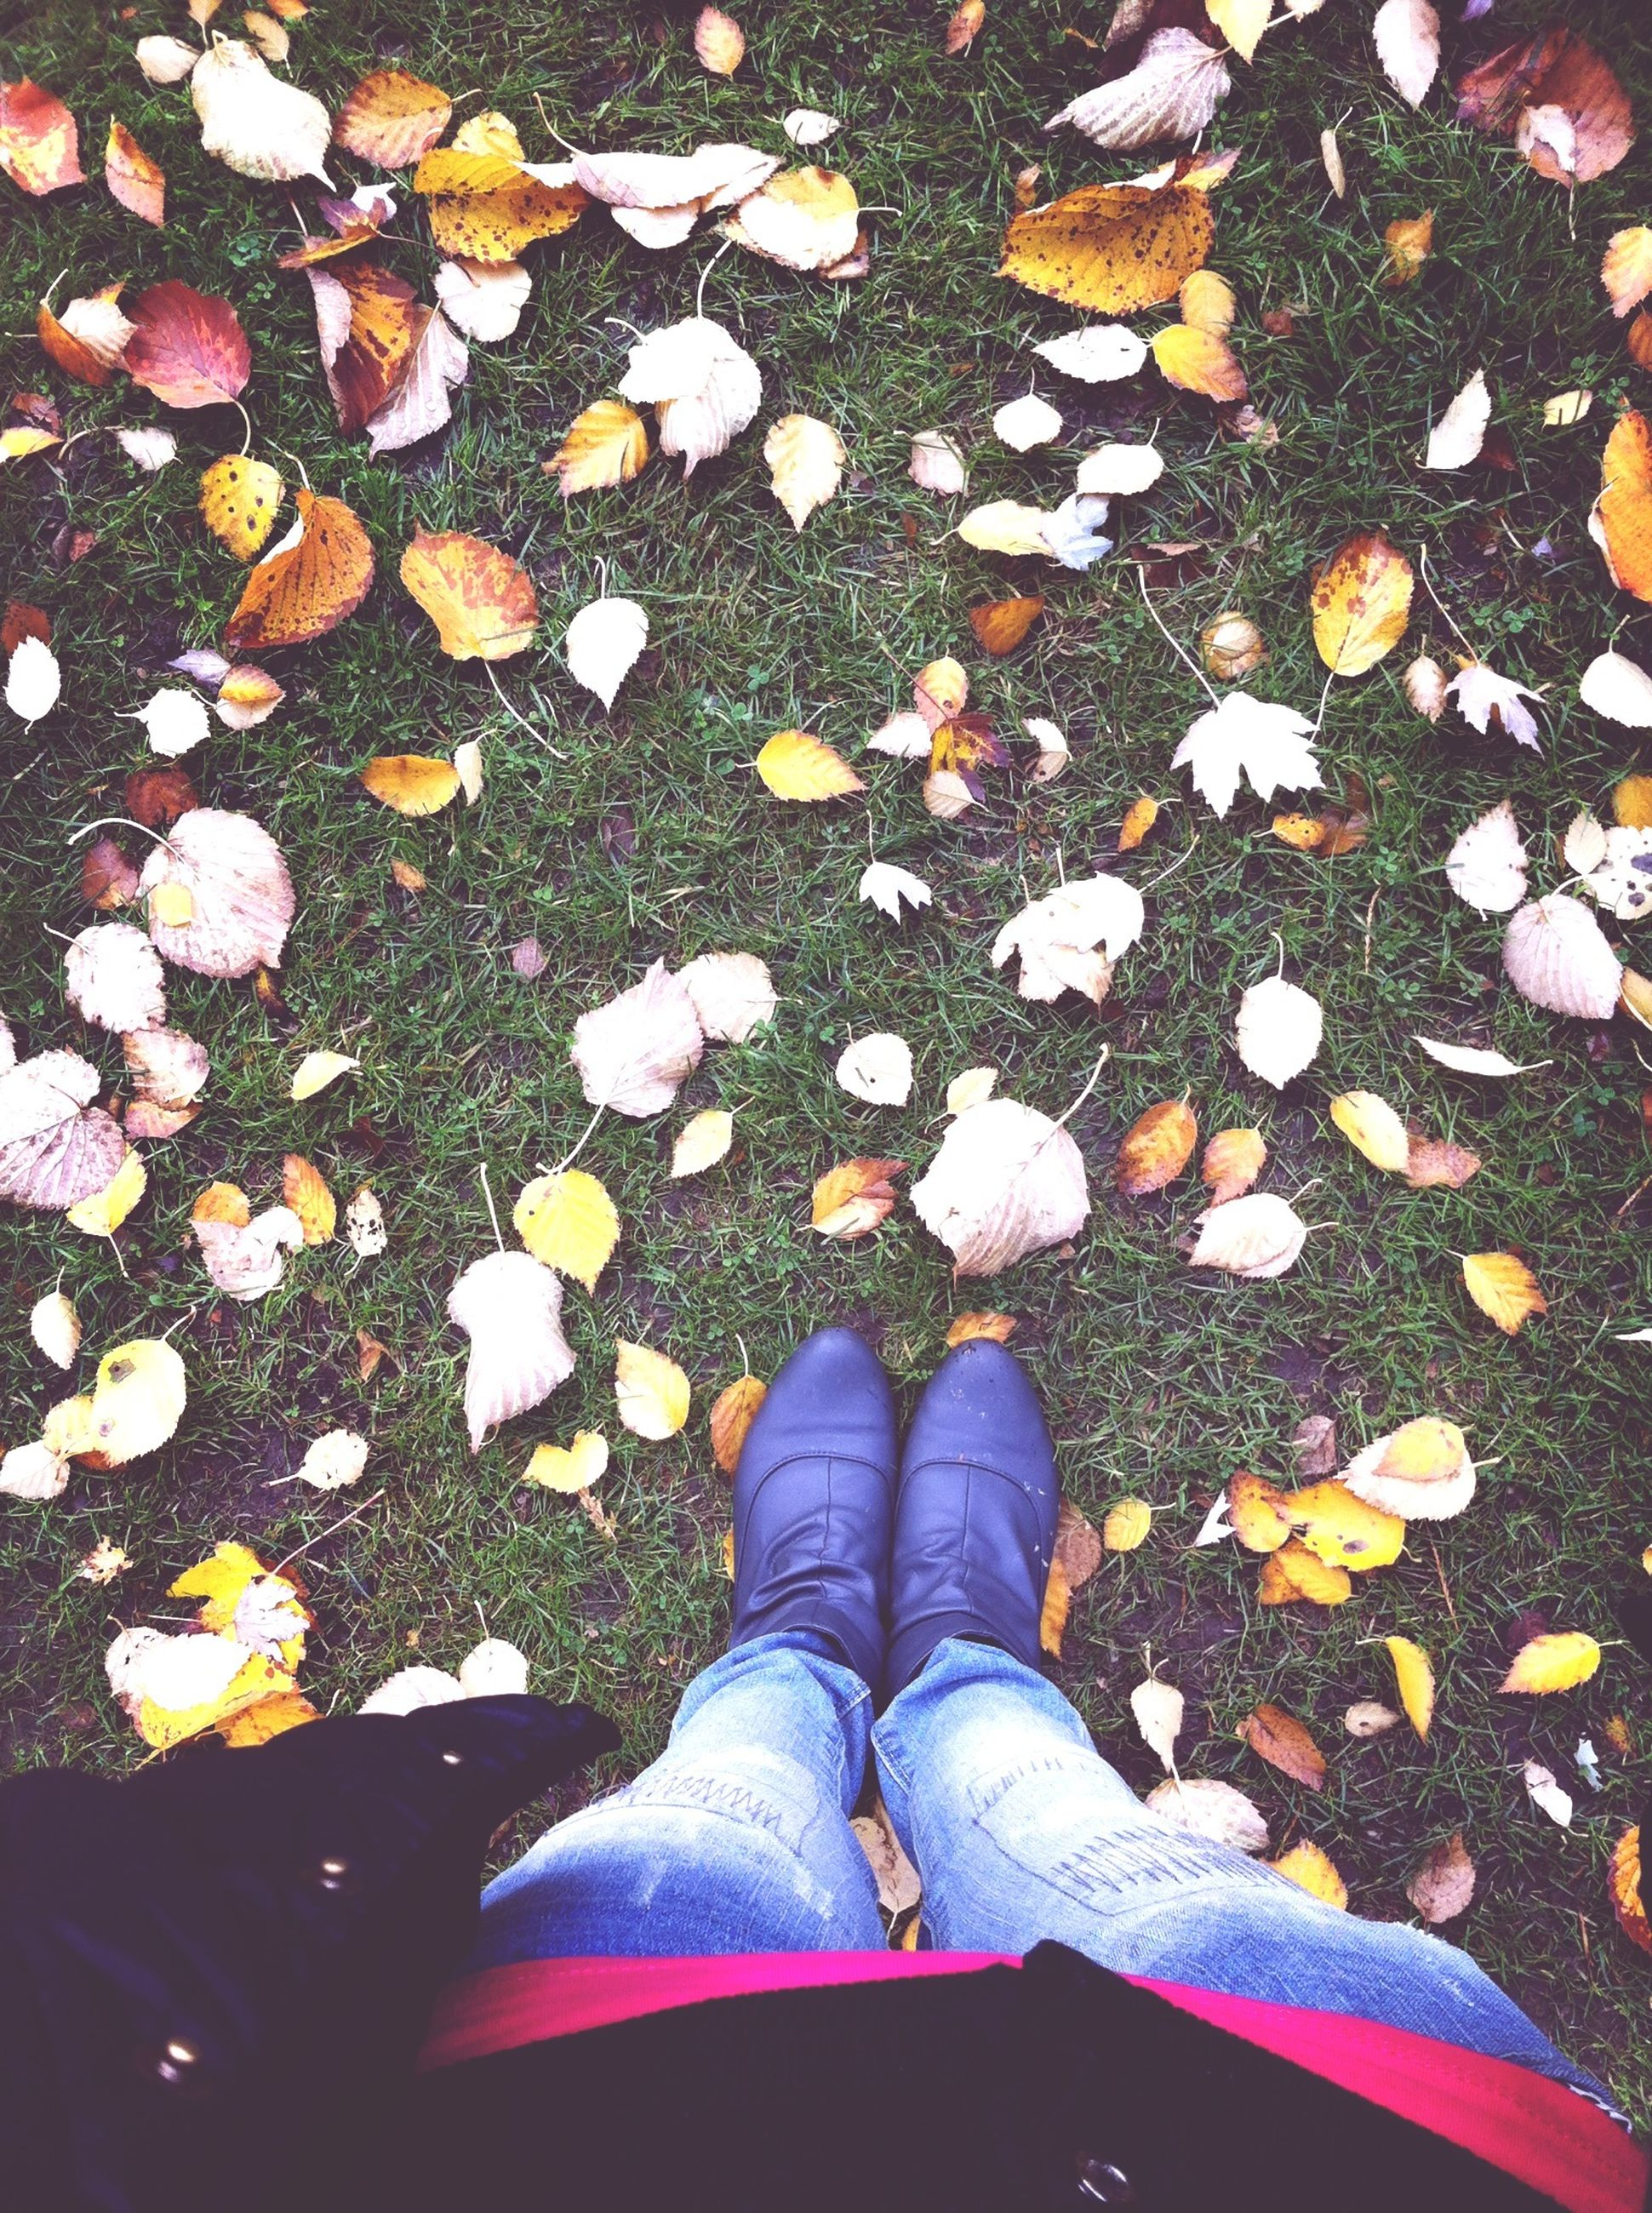 high angle view, low section, shoe, leaf, person, autumn, fallen, directly above, leaves, dry, abundance, flower, fragility, footwear, personal perspective, change, standing, season